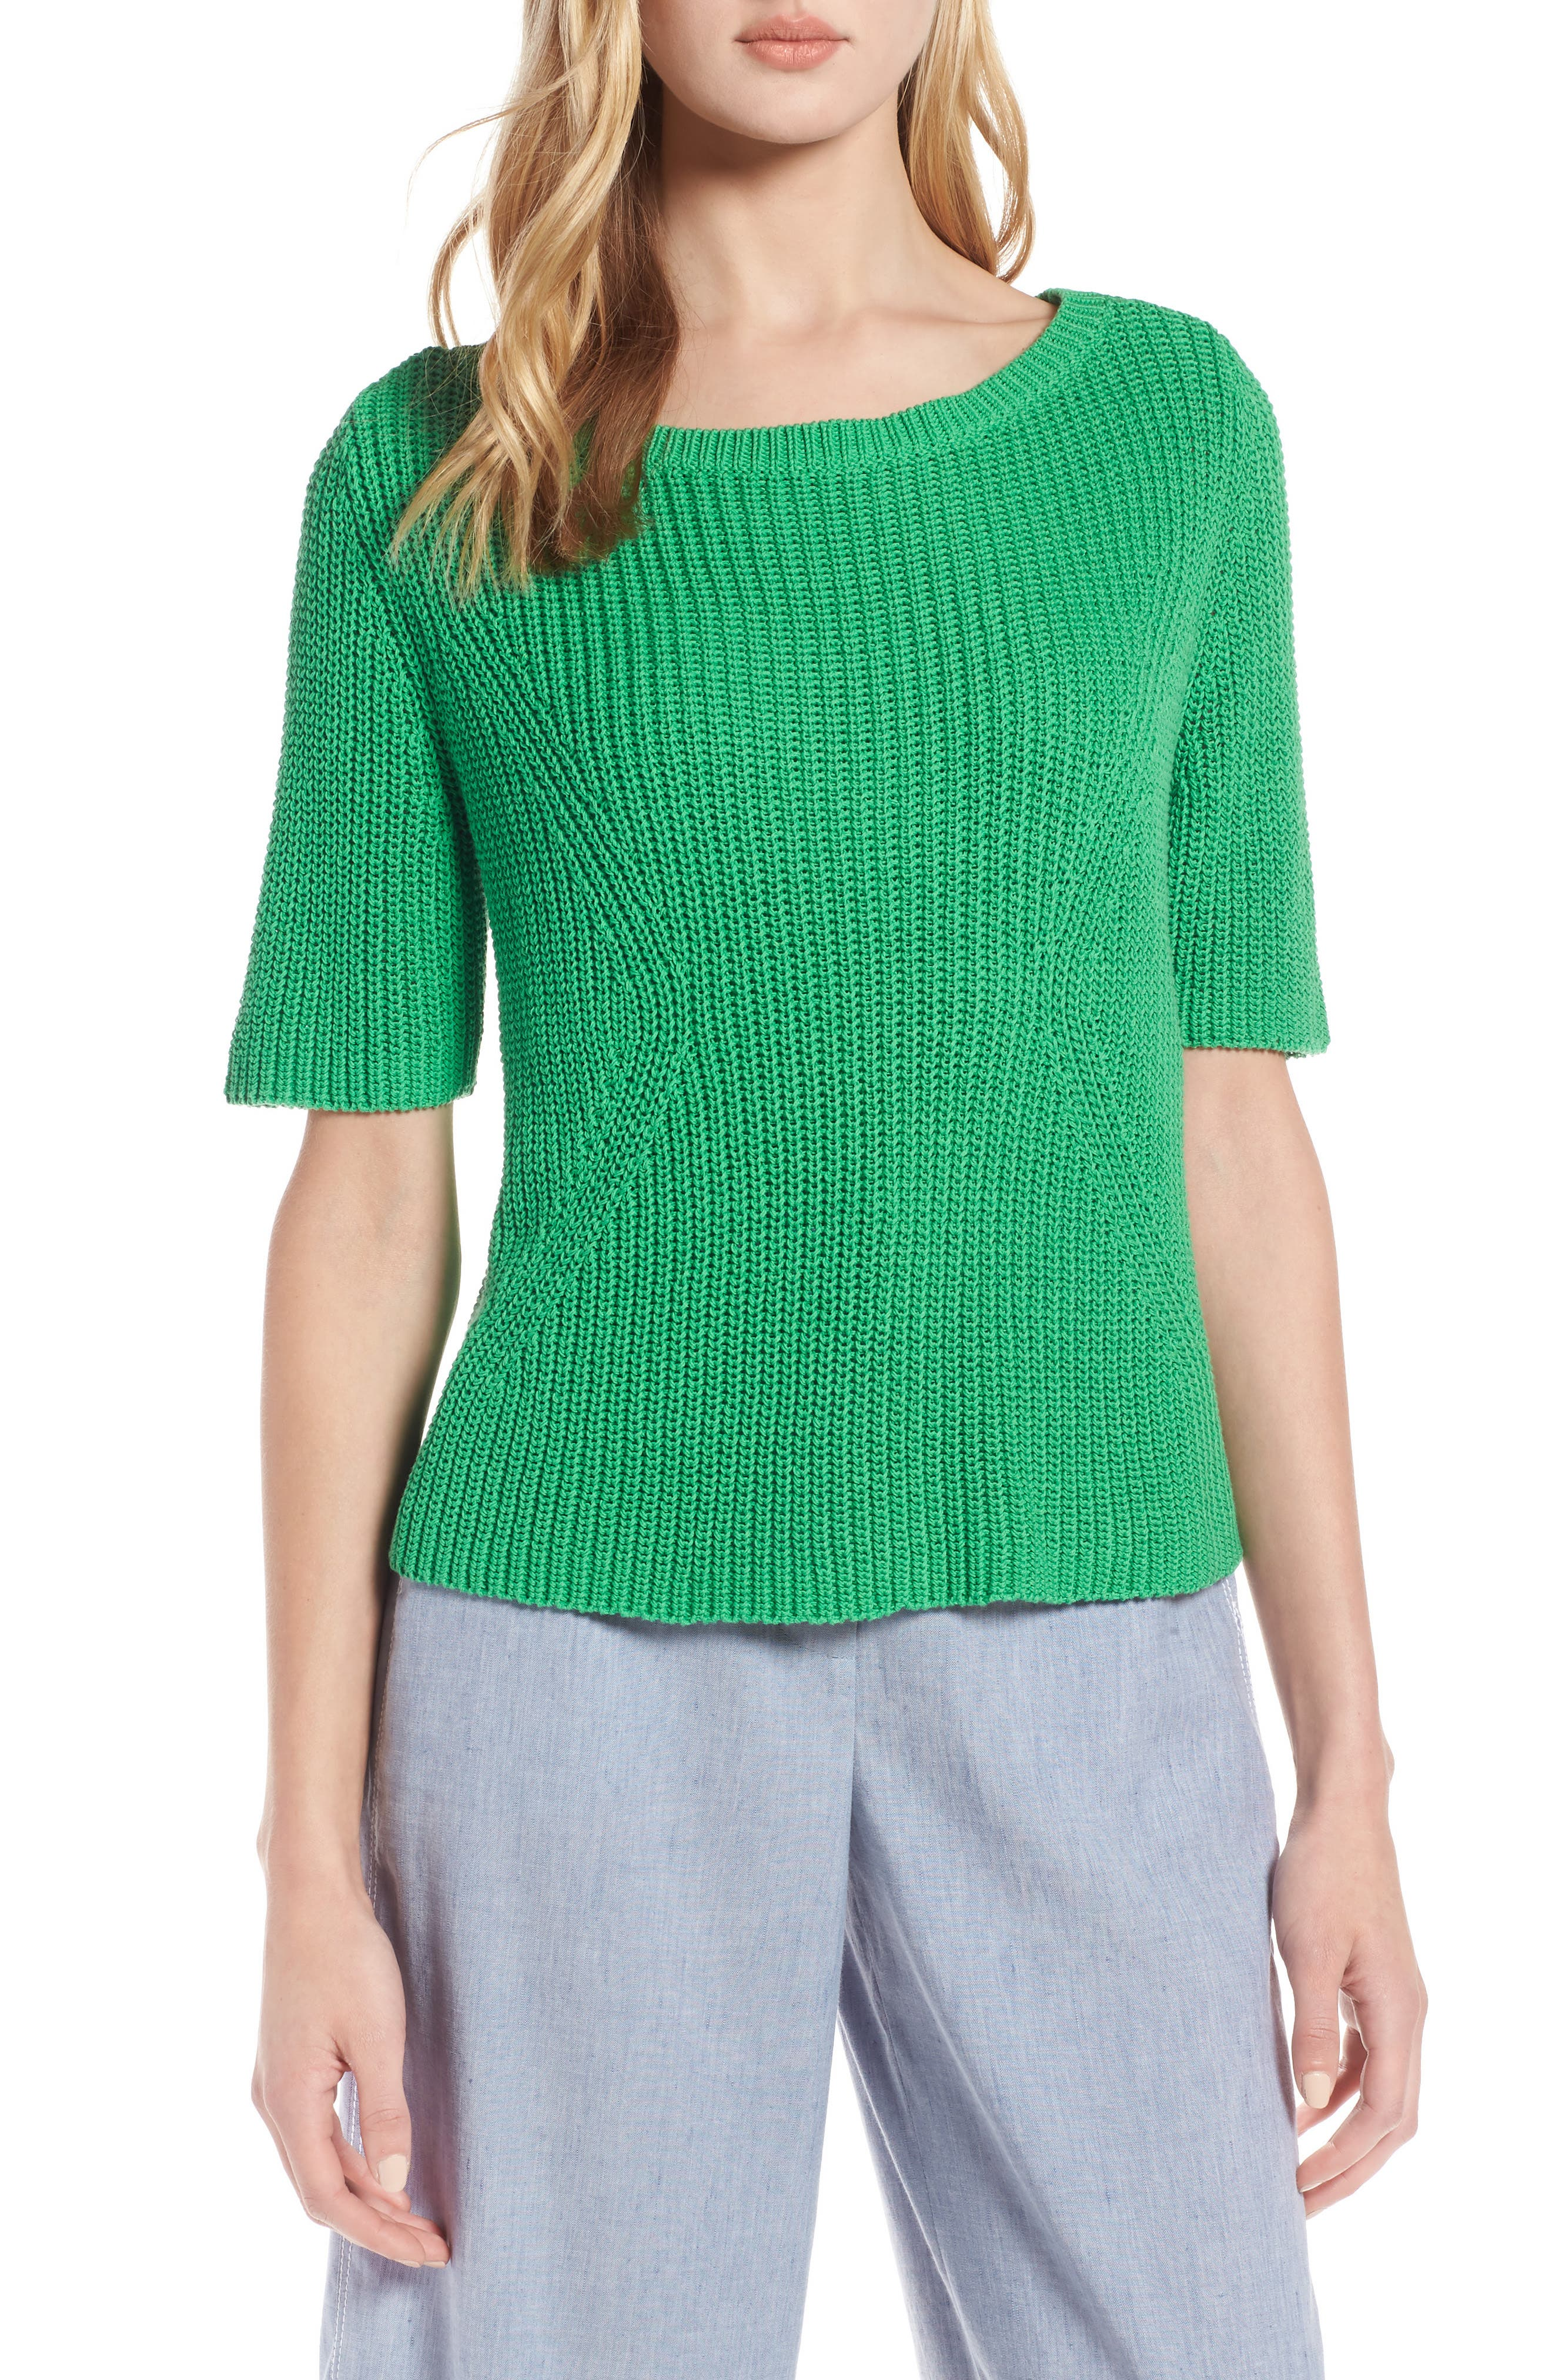 Shaker Stitch Cotton Sweater,                             Main thumbnail 1, color,                             330